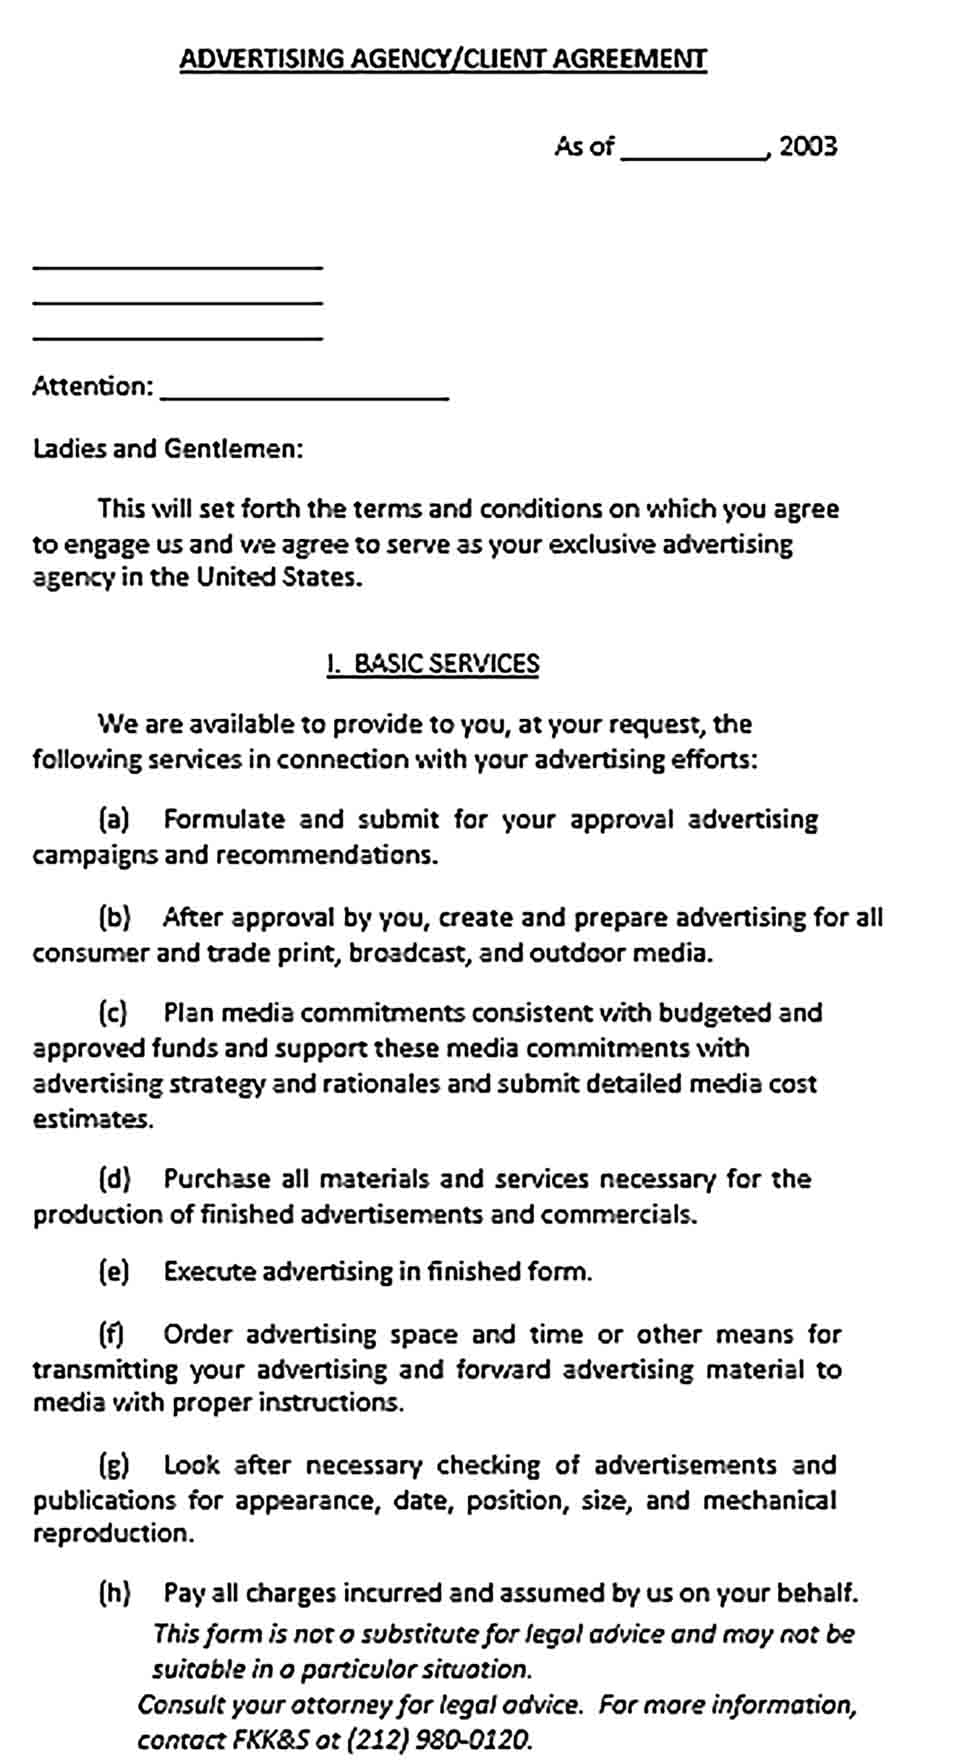 Sample Advertising Agency Agreement